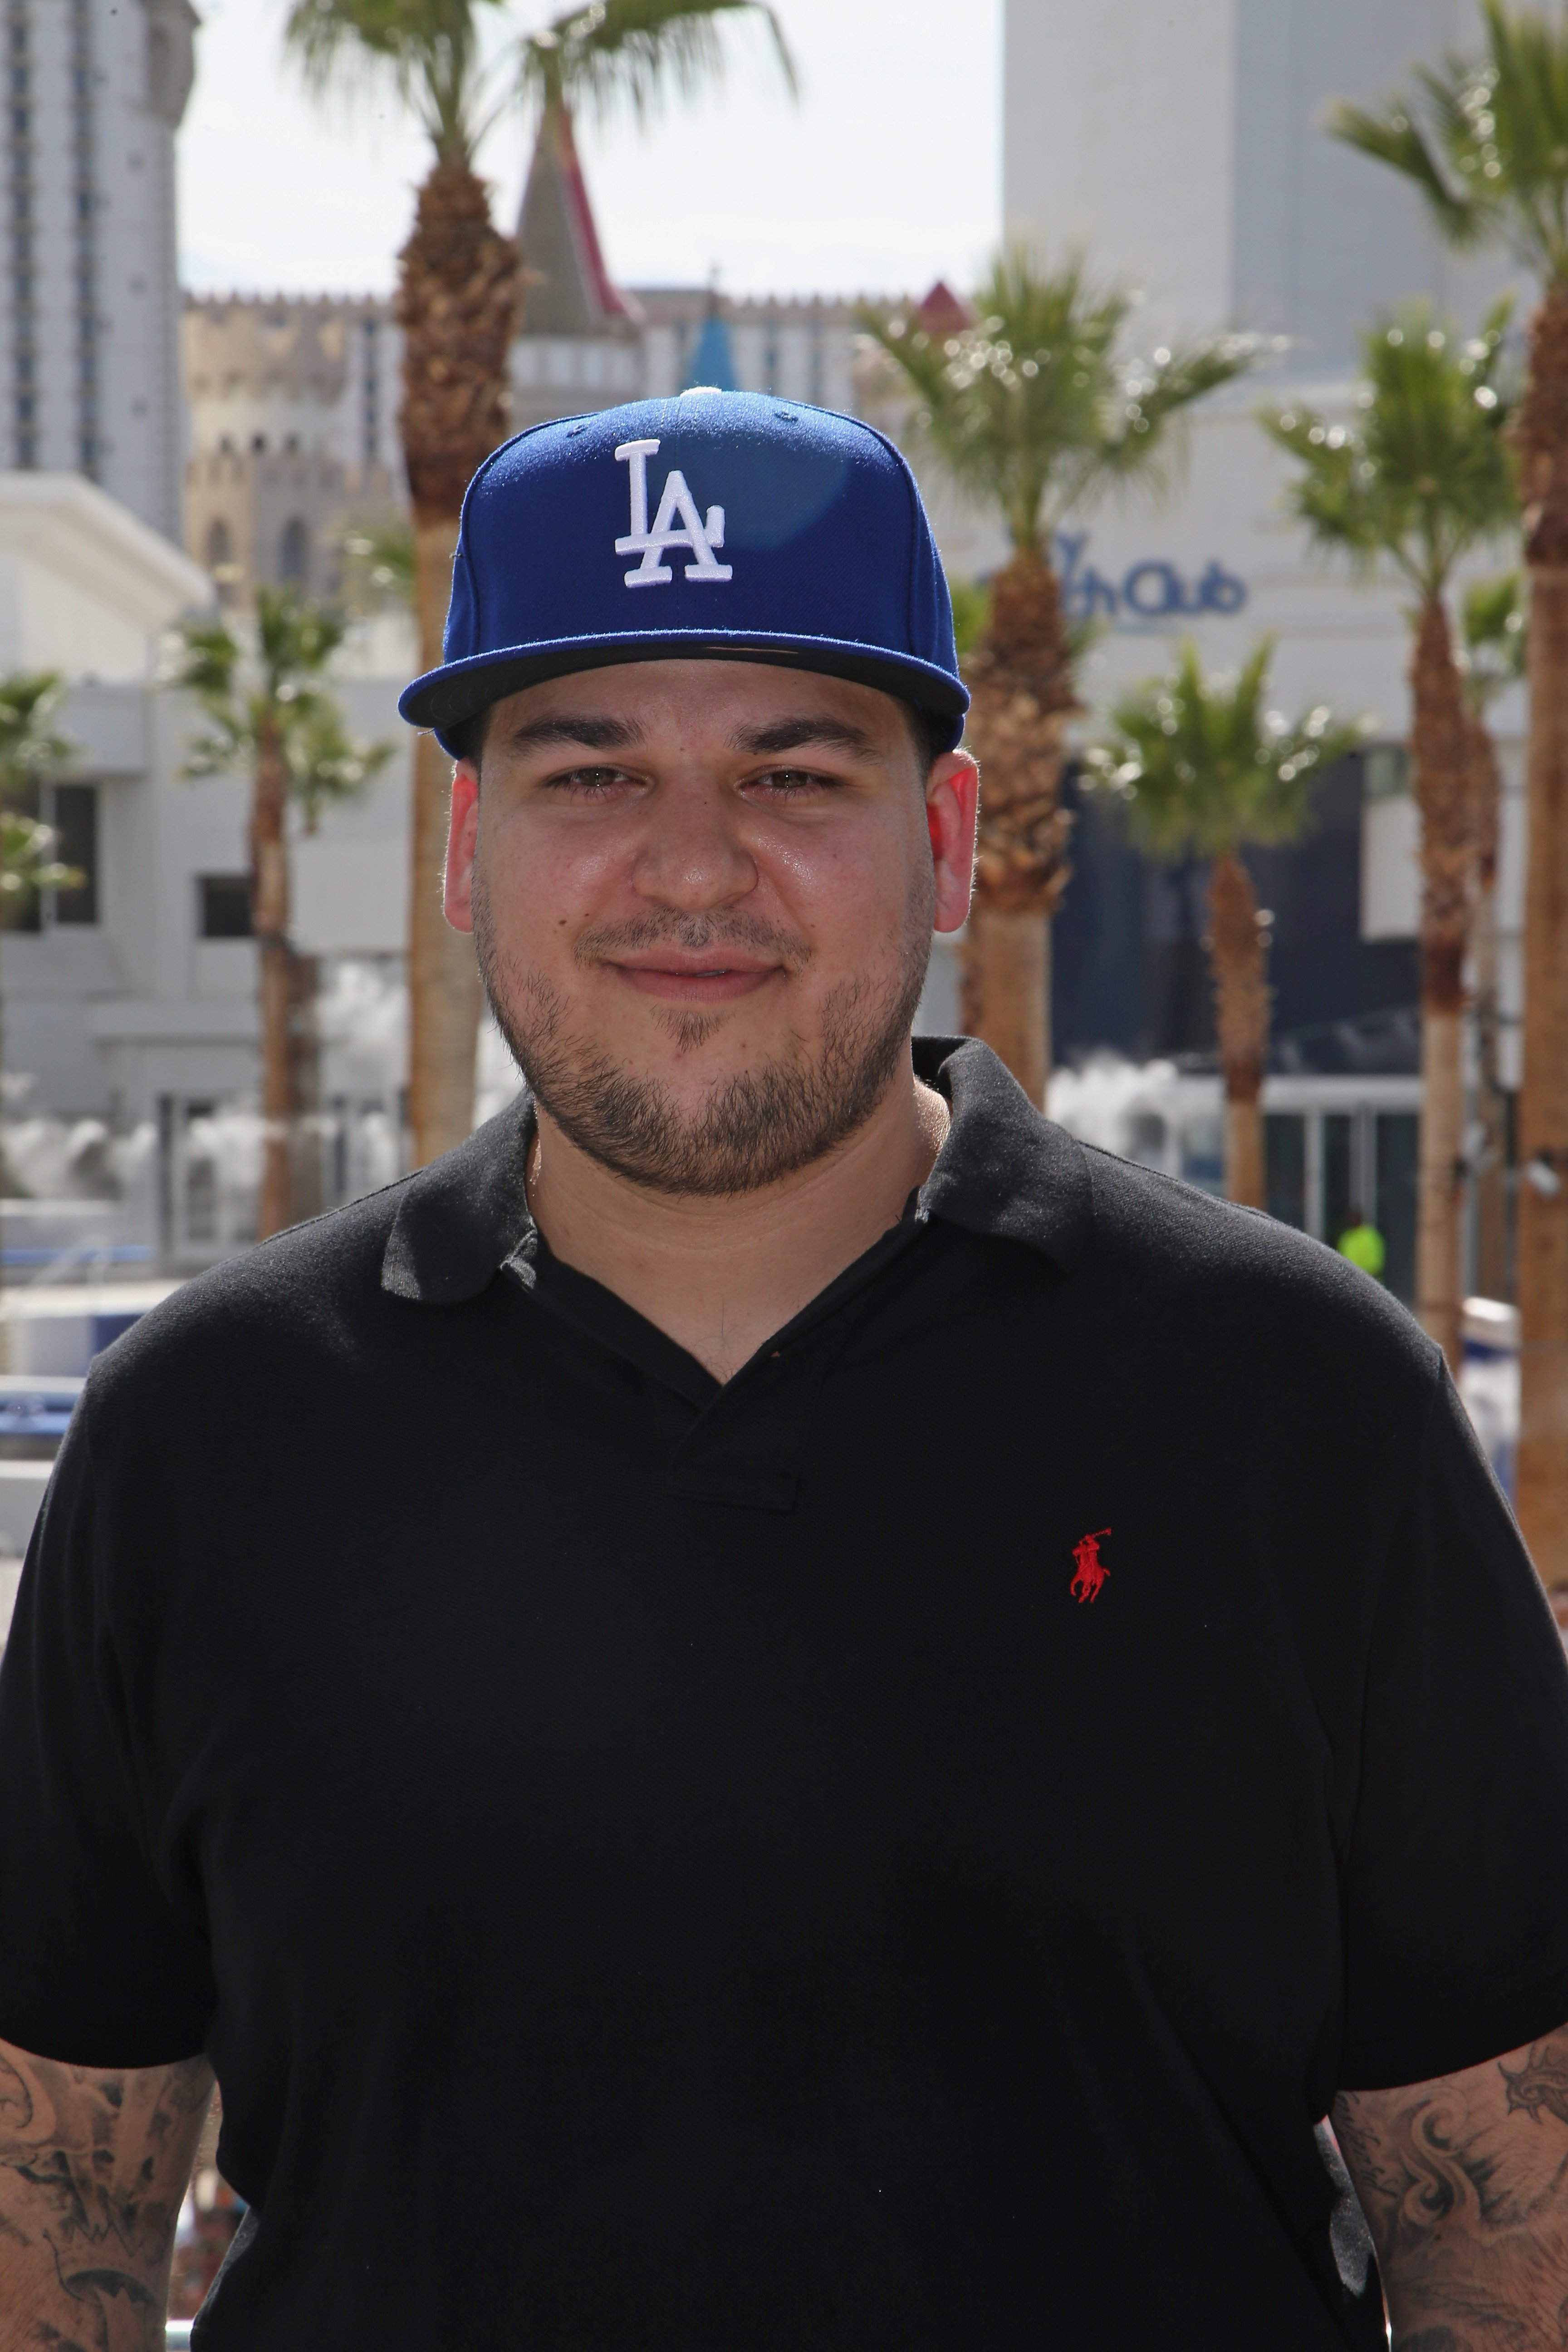 Rob Kardashian at the Sky Beach Club at the Tropicana Las Vegas on May 28, 2016 | Source: Getty Images/GlobalImagesUkraine